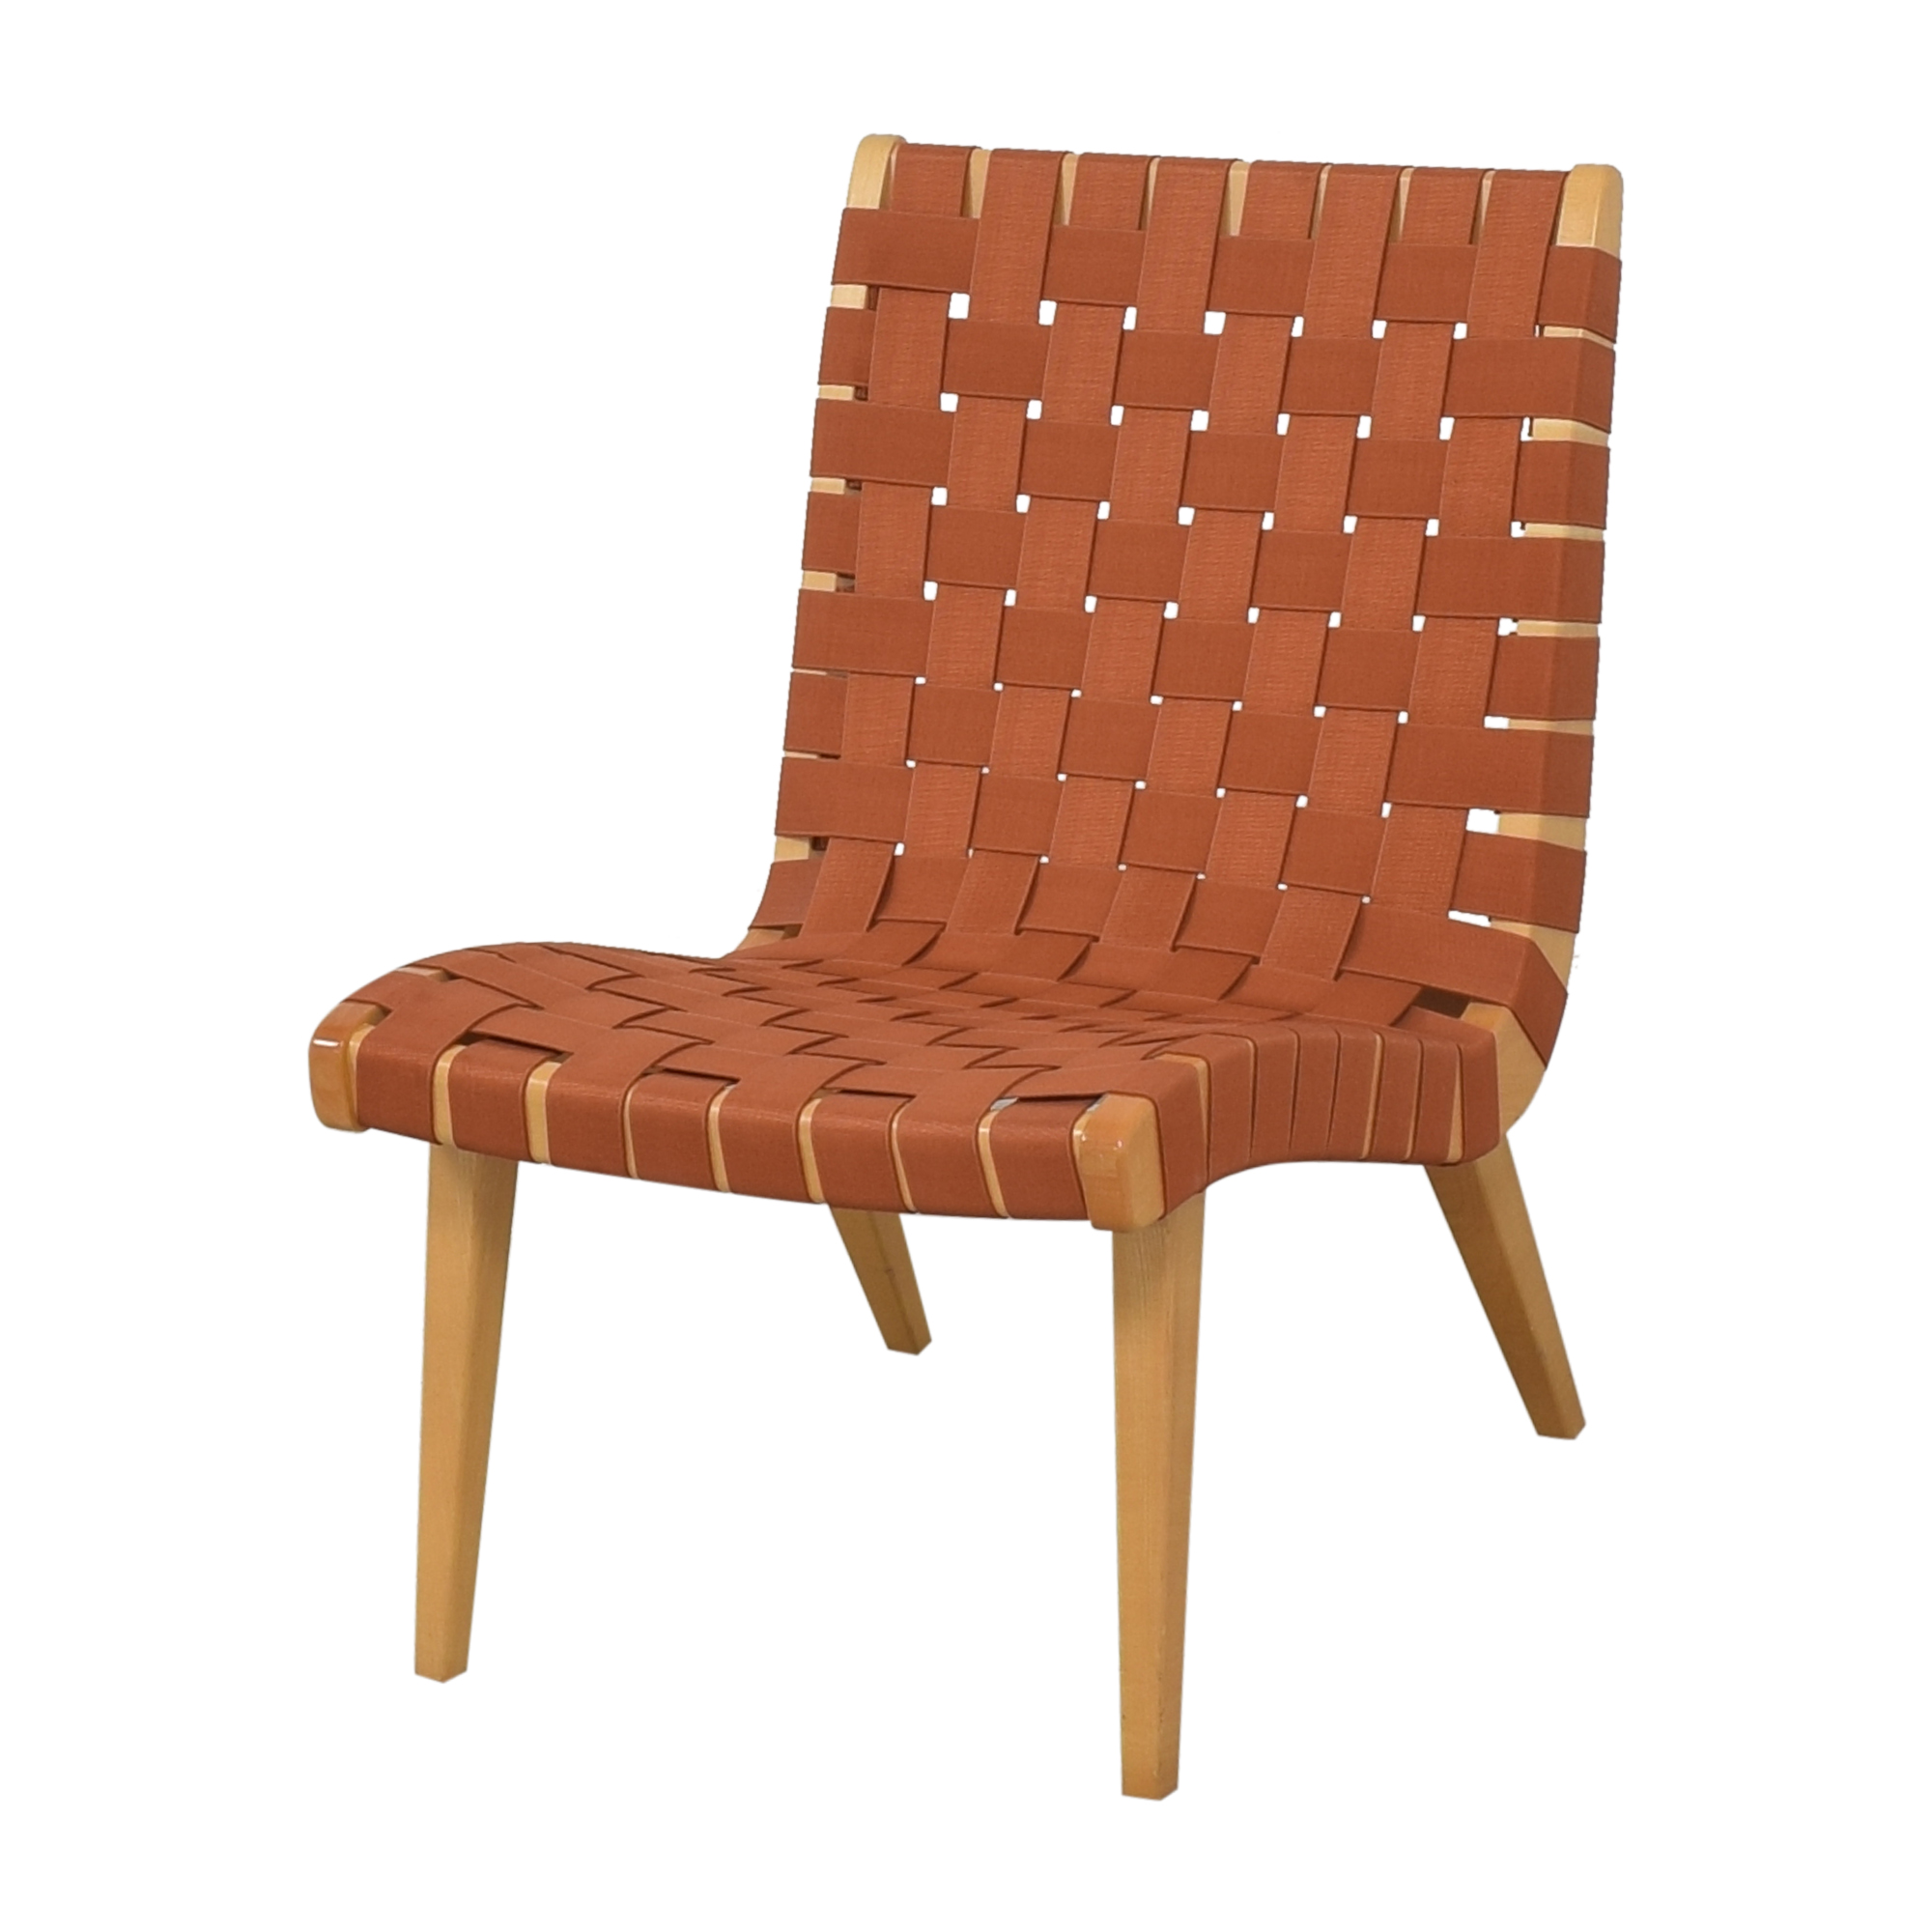 Knoll Knoll Jens Risom Lounge Chair orange and light brown